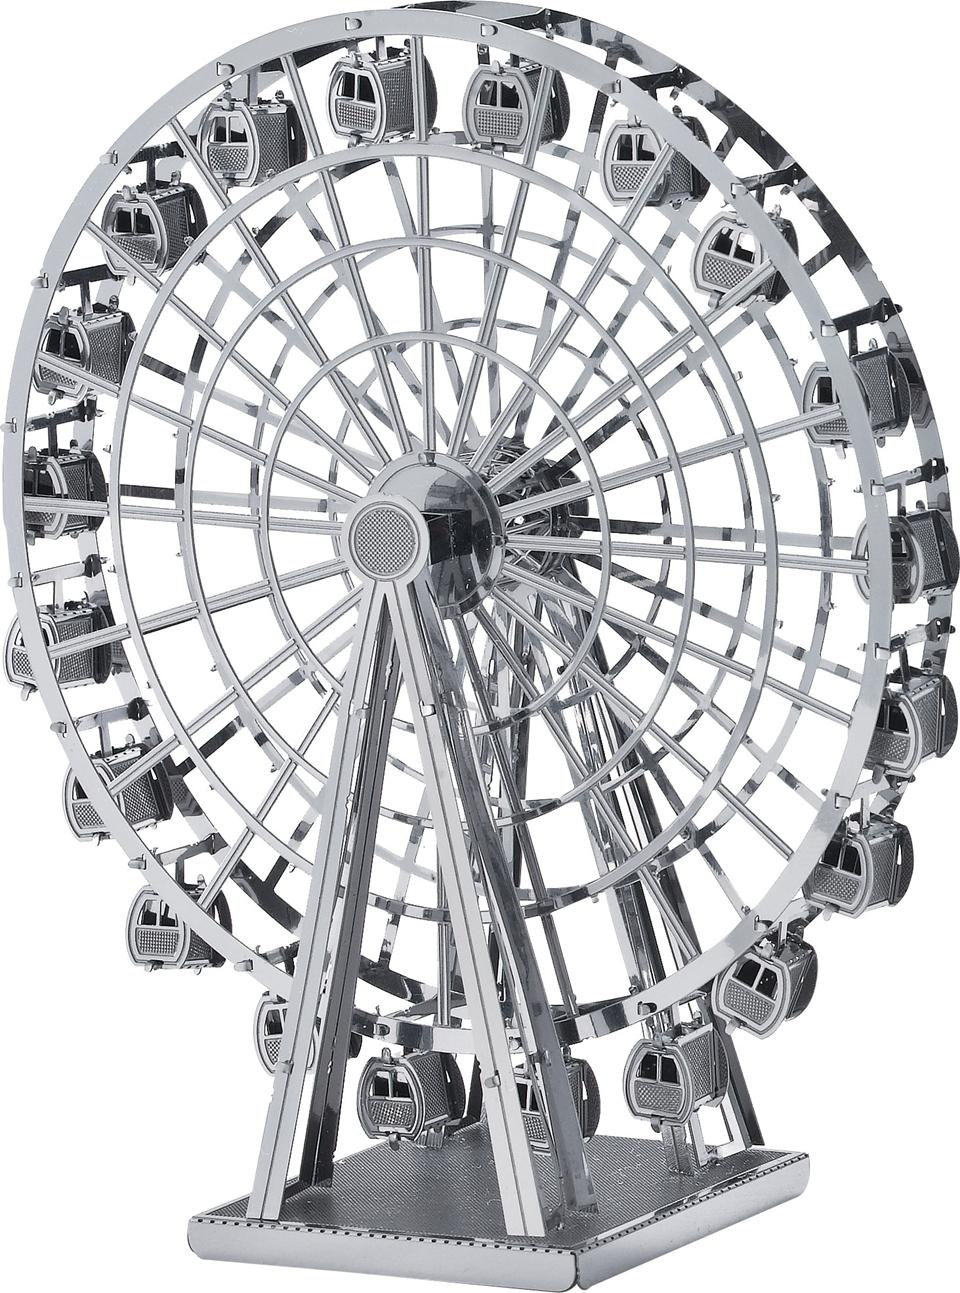 Educational Toys 2015 New silver Ferris wheel Construction 3D Nano metal DIY board games for children Birthday gift for kids(China (Mainland))